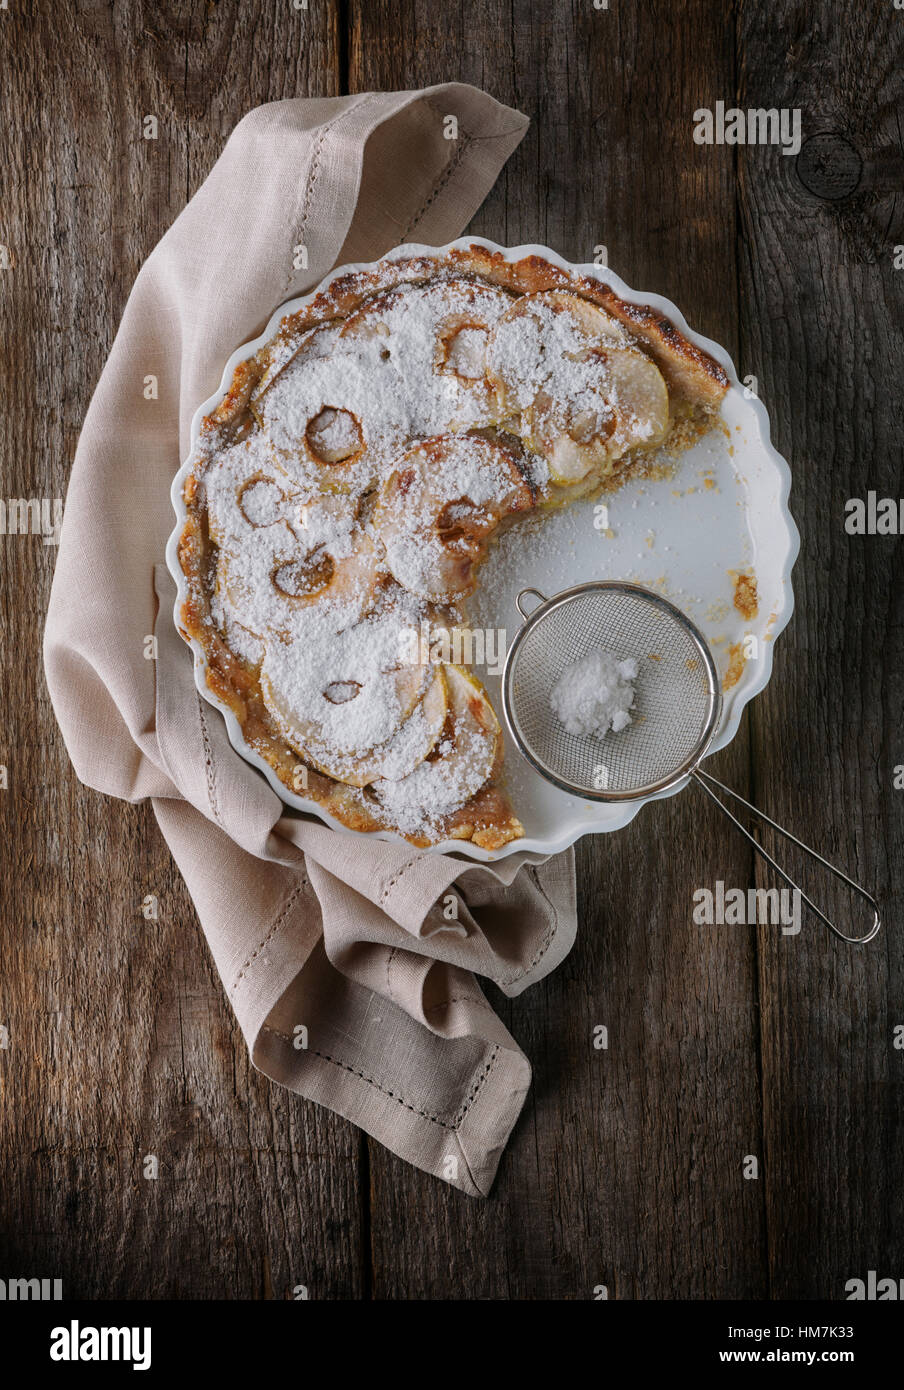 Apple pie and a napkin on wooden table - Stock Image